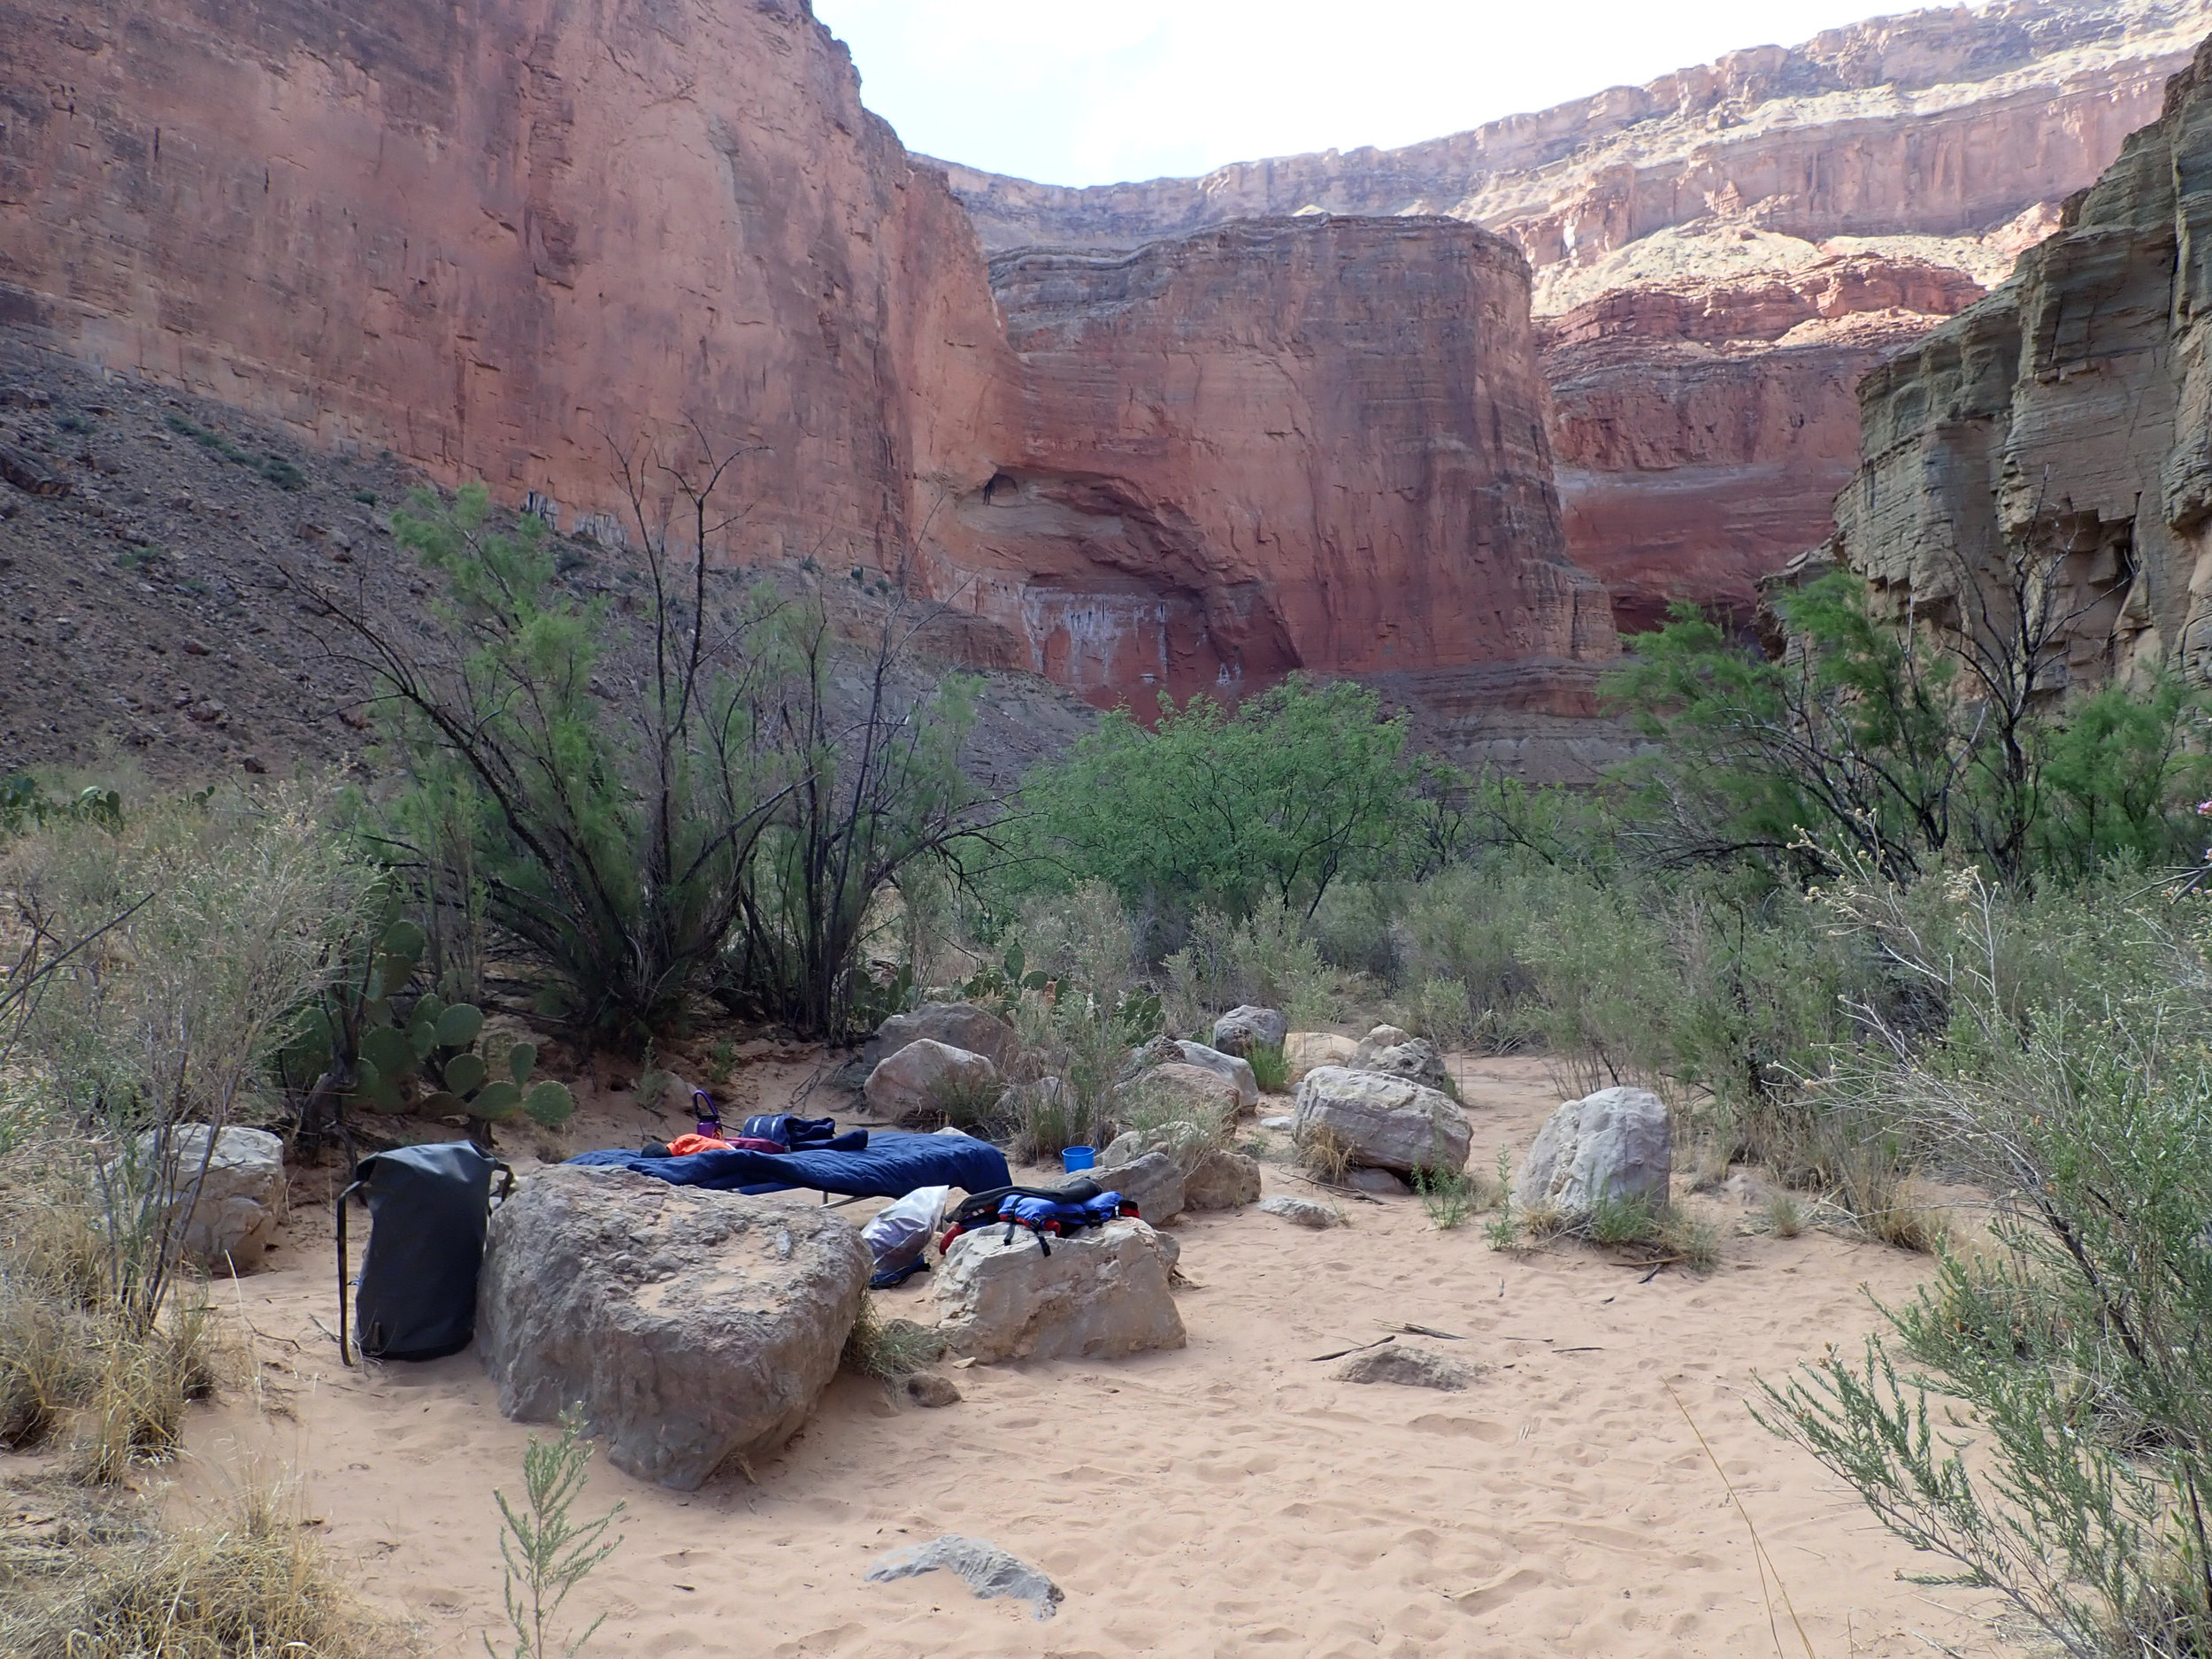 My 'bedroom' at mile 47 1/2, Upper Saddle Camp